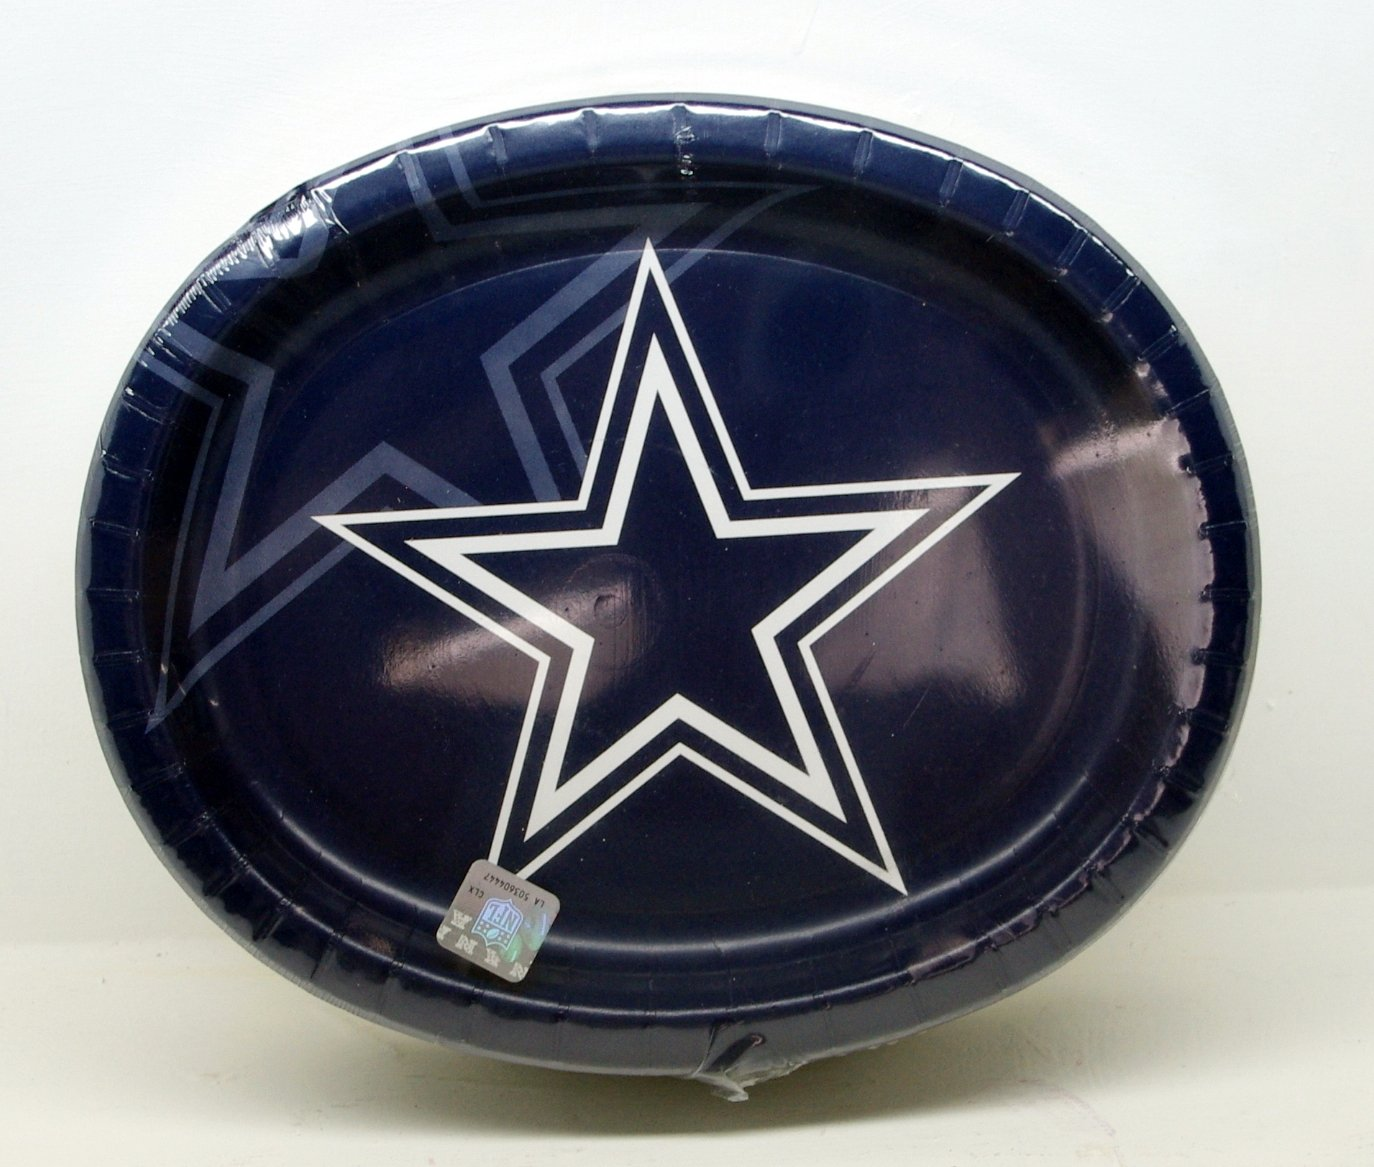 Dallas Cowboy Football GameDay/Tailgate Sturdy Oval Paper Plates 50 Ct.